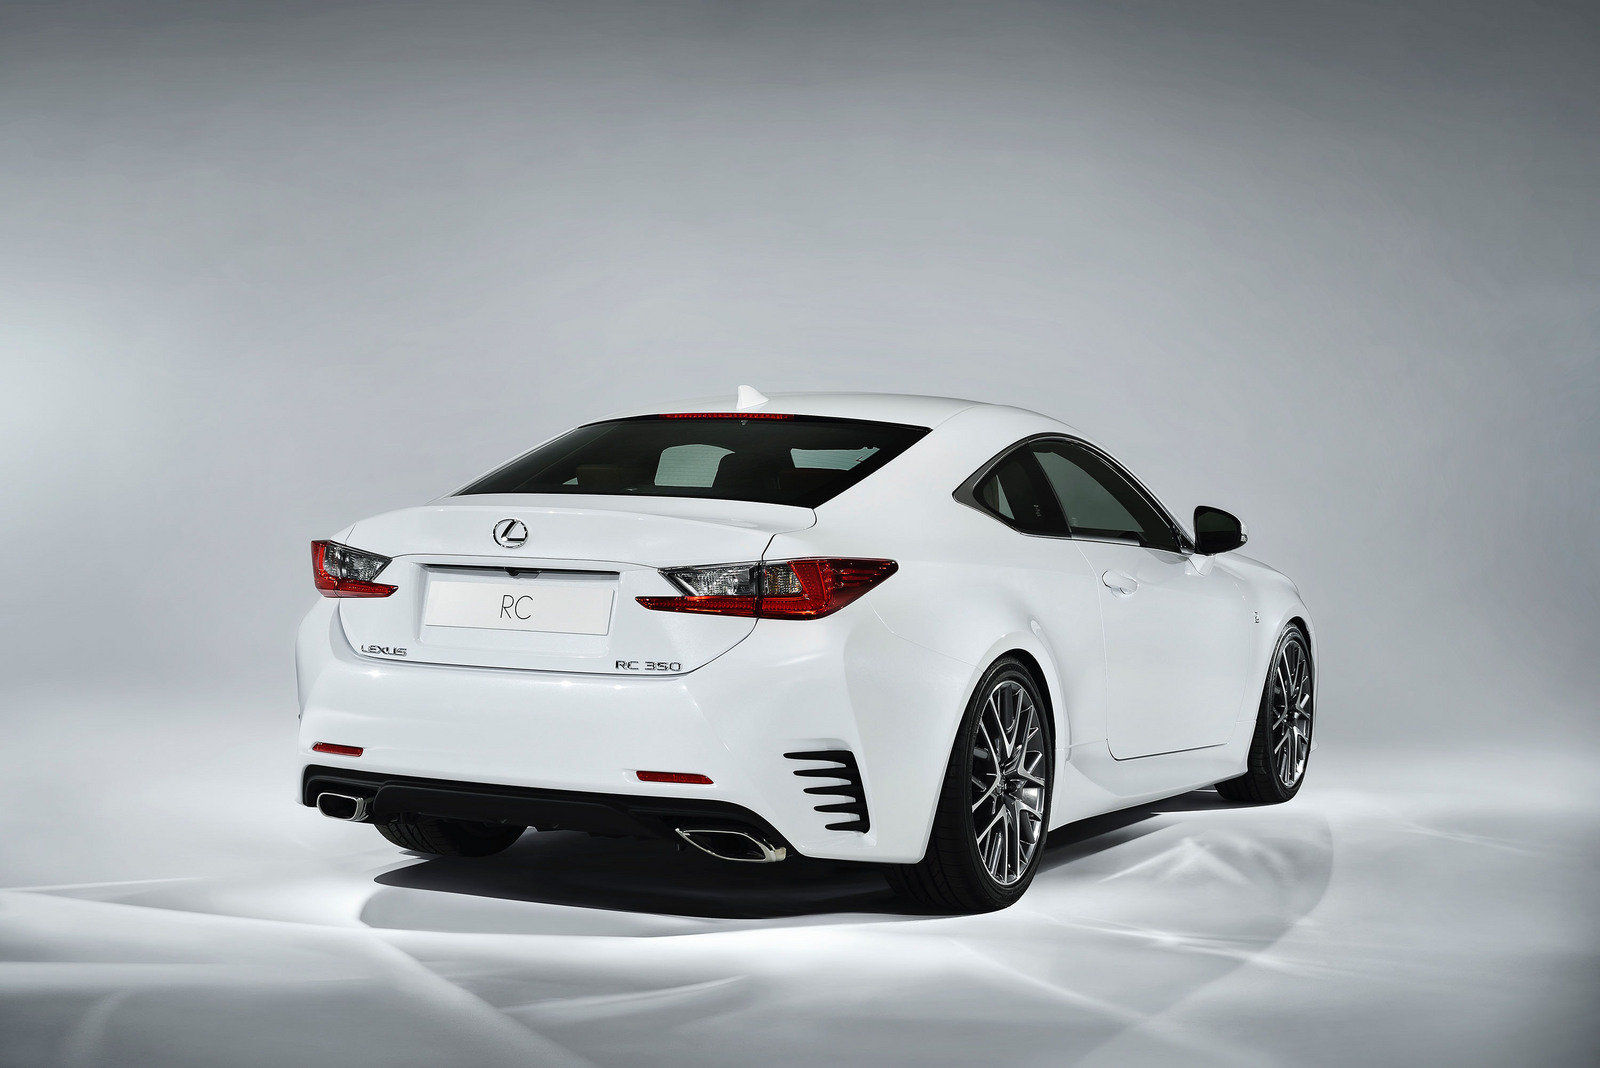 2015 lexus rc 350 f sport picture 544015 car review top speed. Black Bedroom Furniture Sets. Home Design Ideas